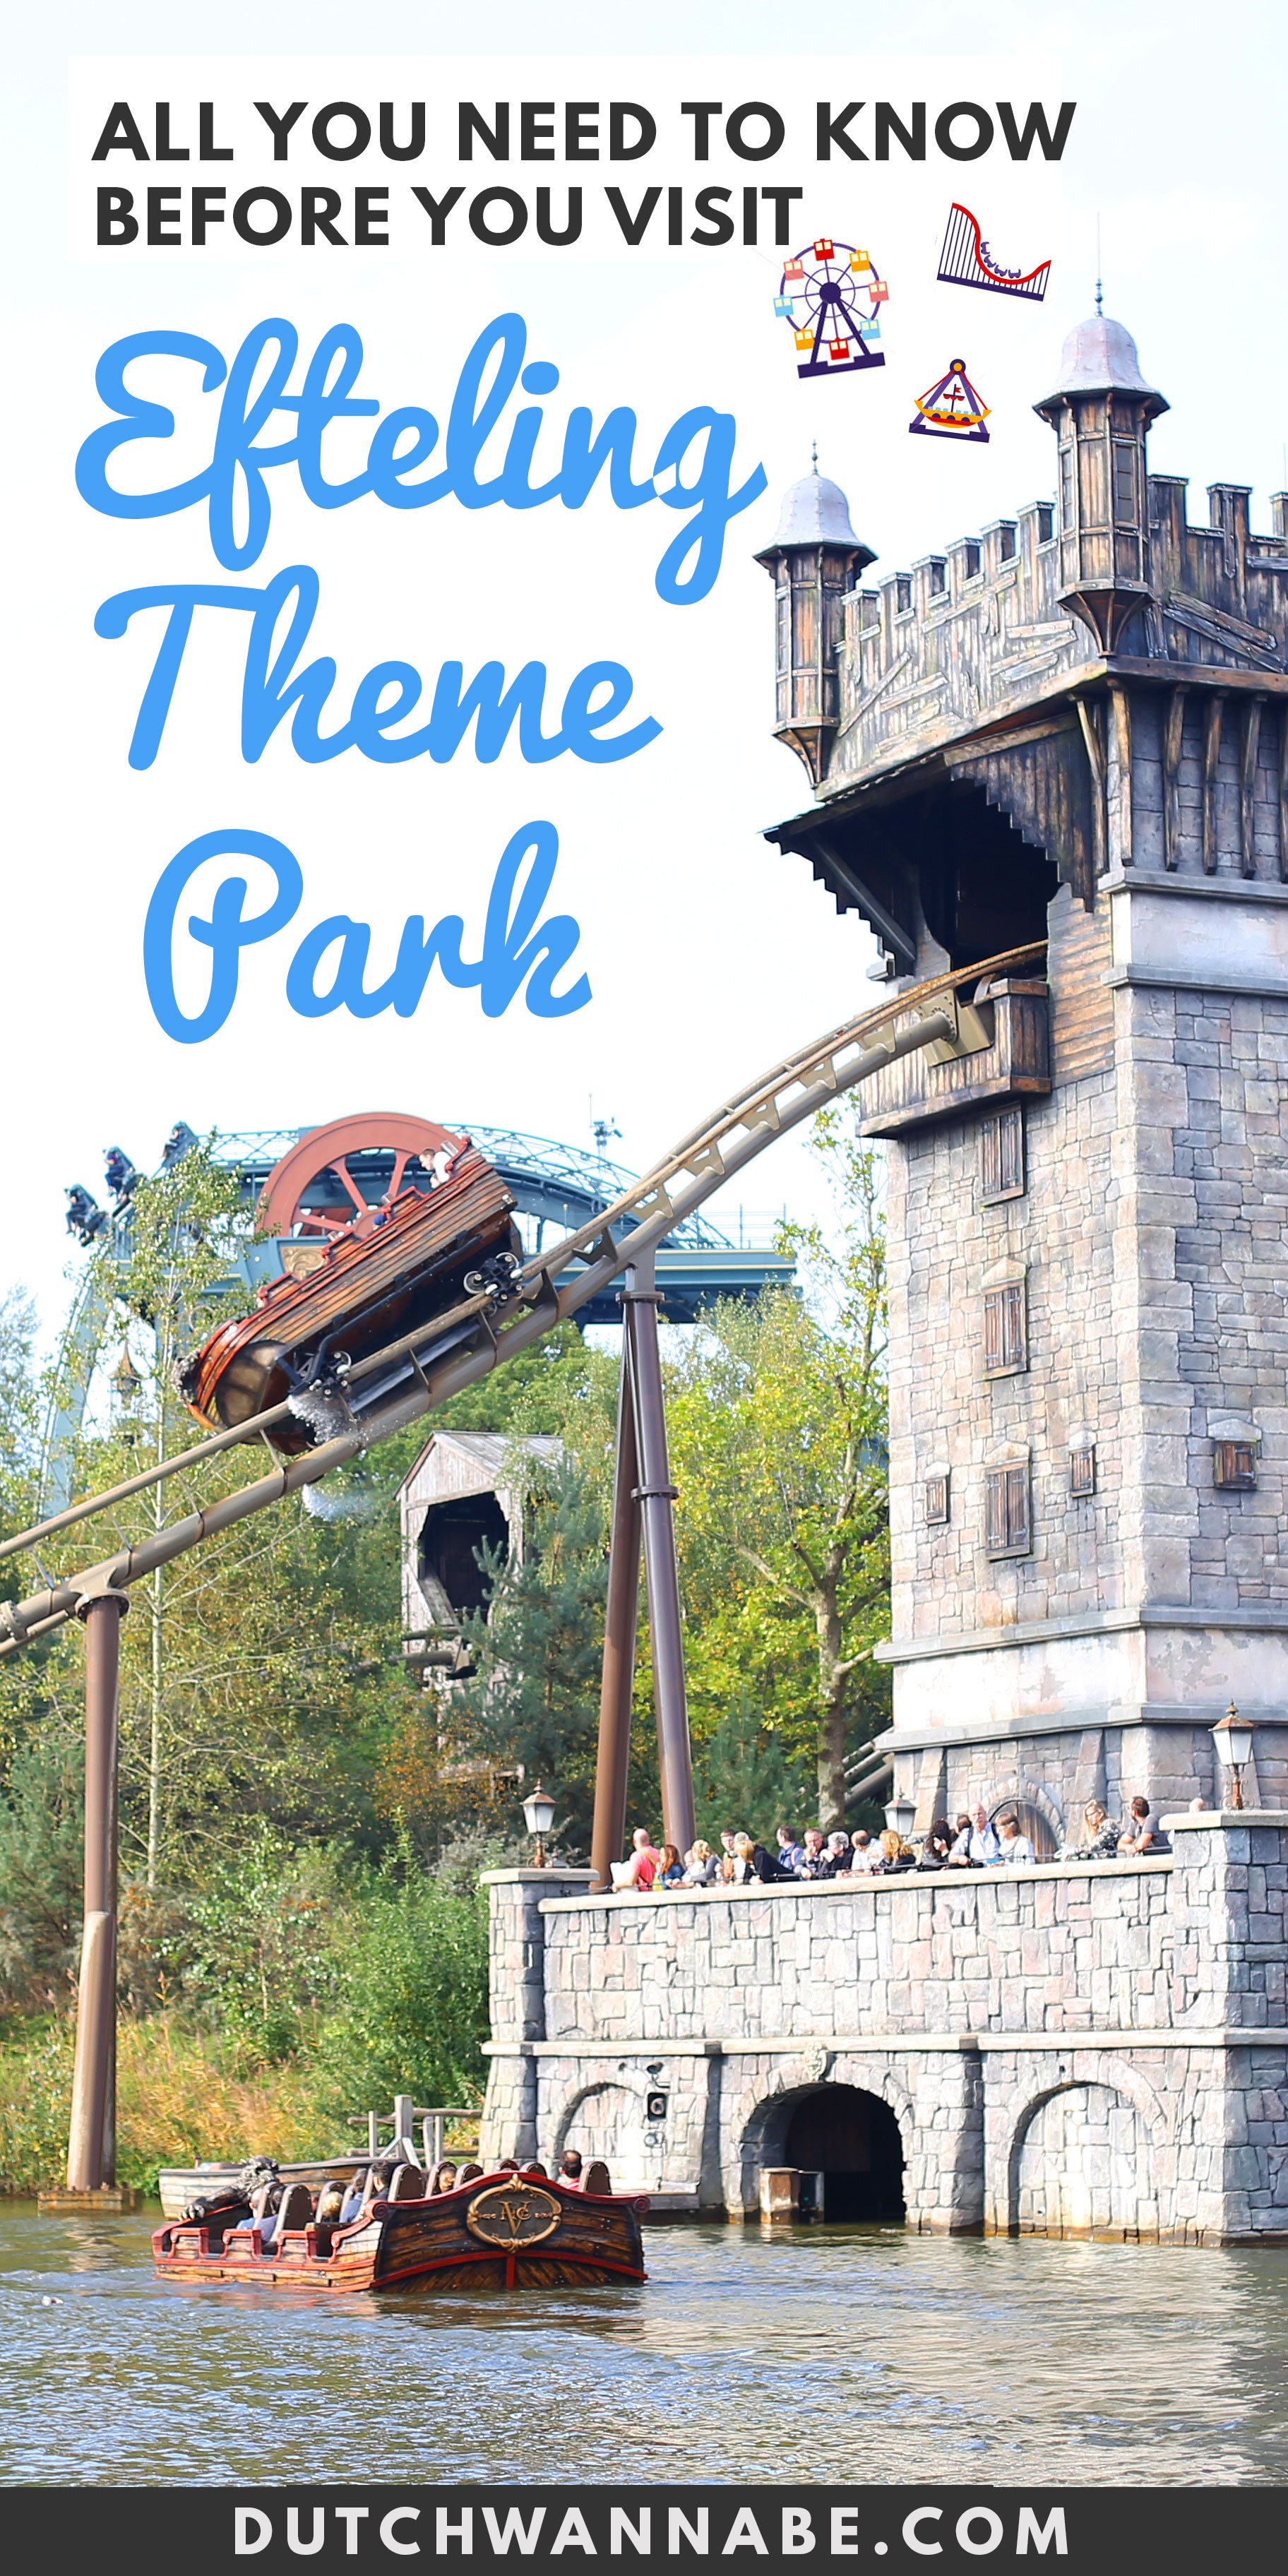 All you need to know about Efteling Theme Park: how to get to Holland's biggest amusement park, discounted Efteling tickets, must visit attractions Efteling prices, hotel options & more!